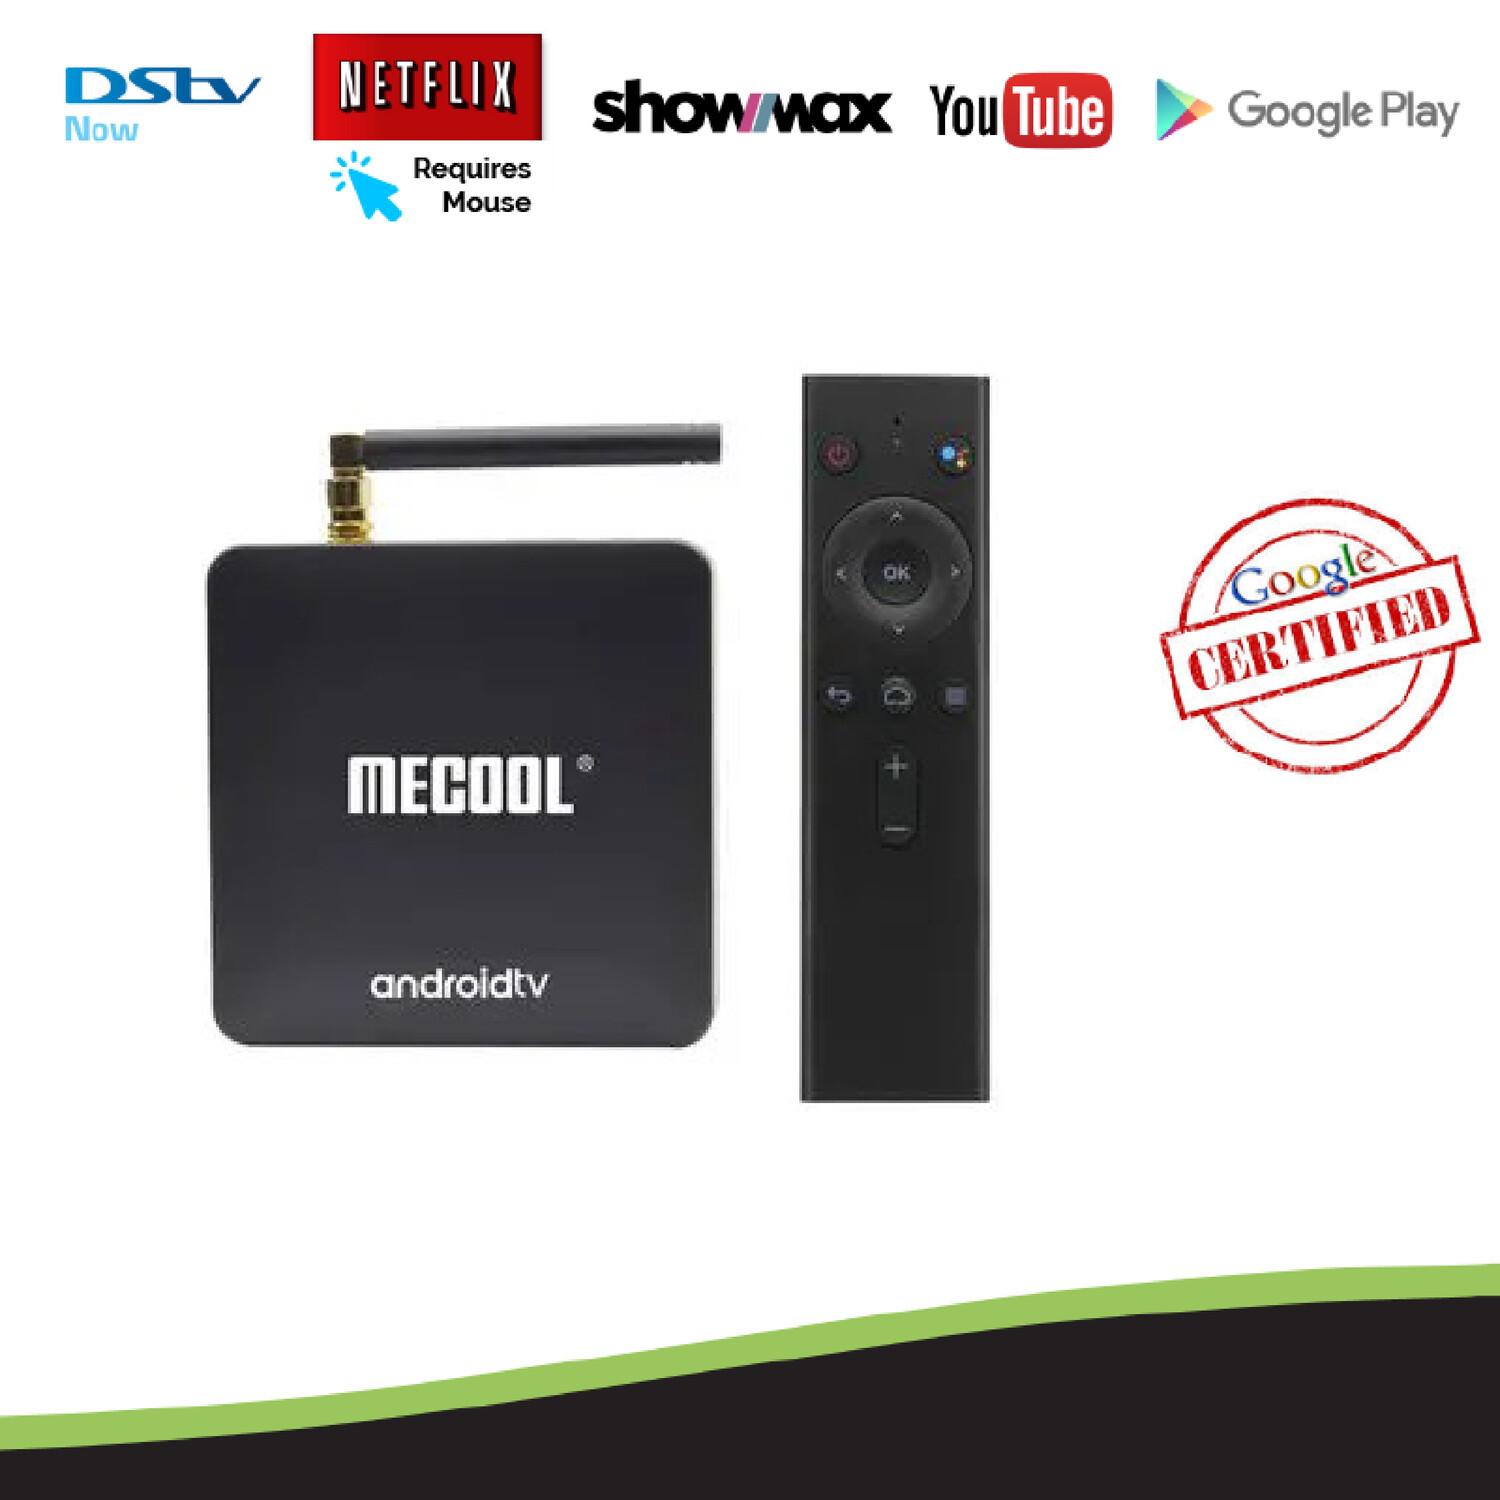 MECOOL KM8 2GB/16GB S905X Android TV OS Smart TV Box